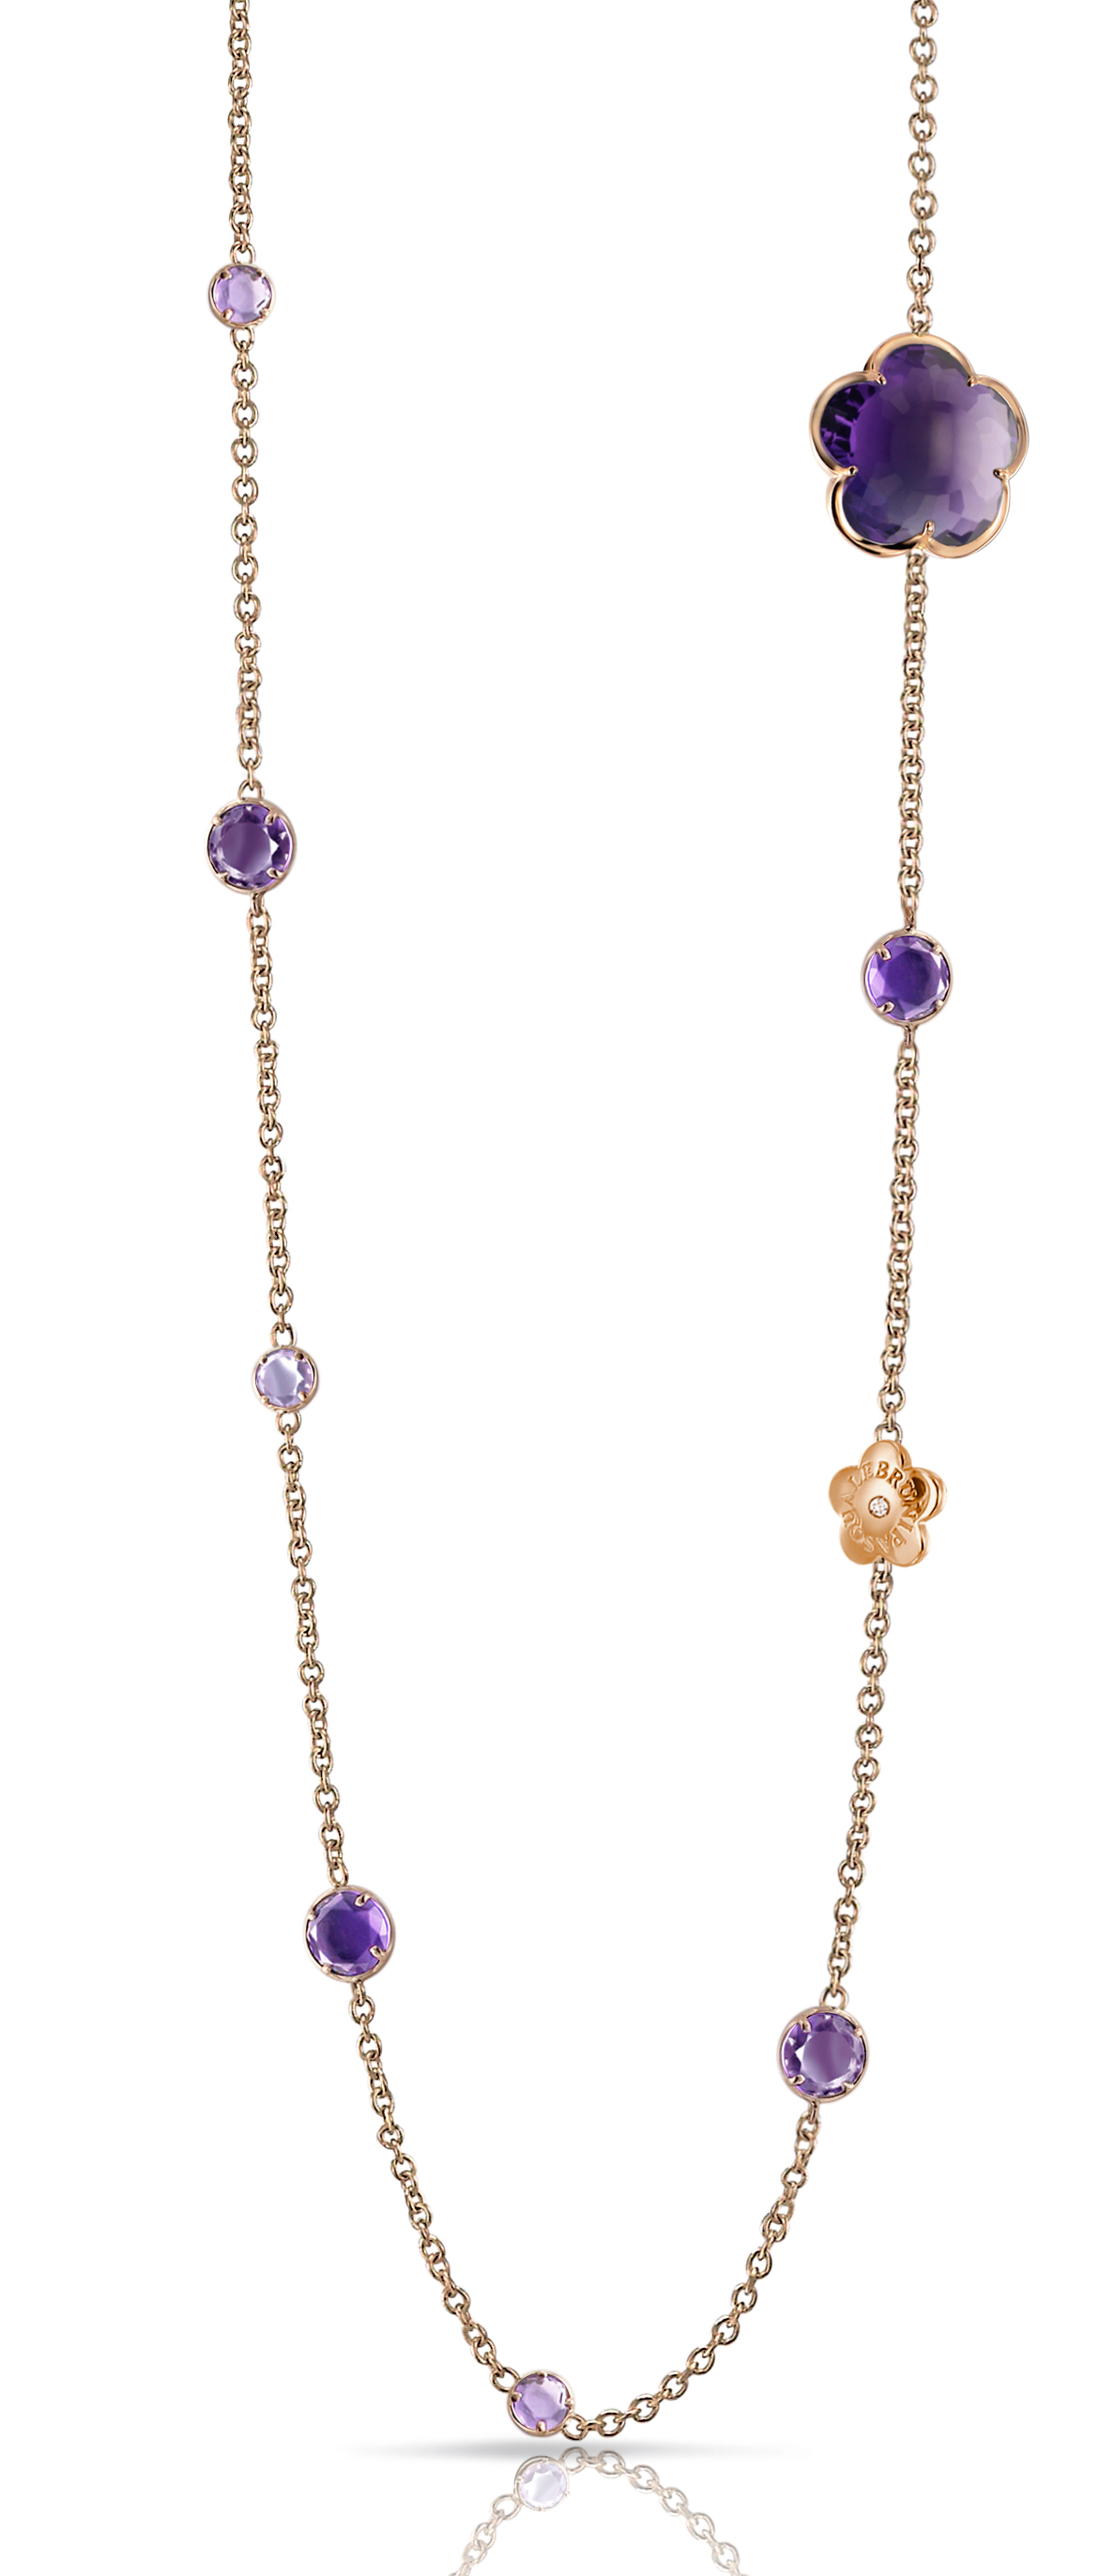 Pasquale Bruni Collana sautoir necklace | JCK On Your Market